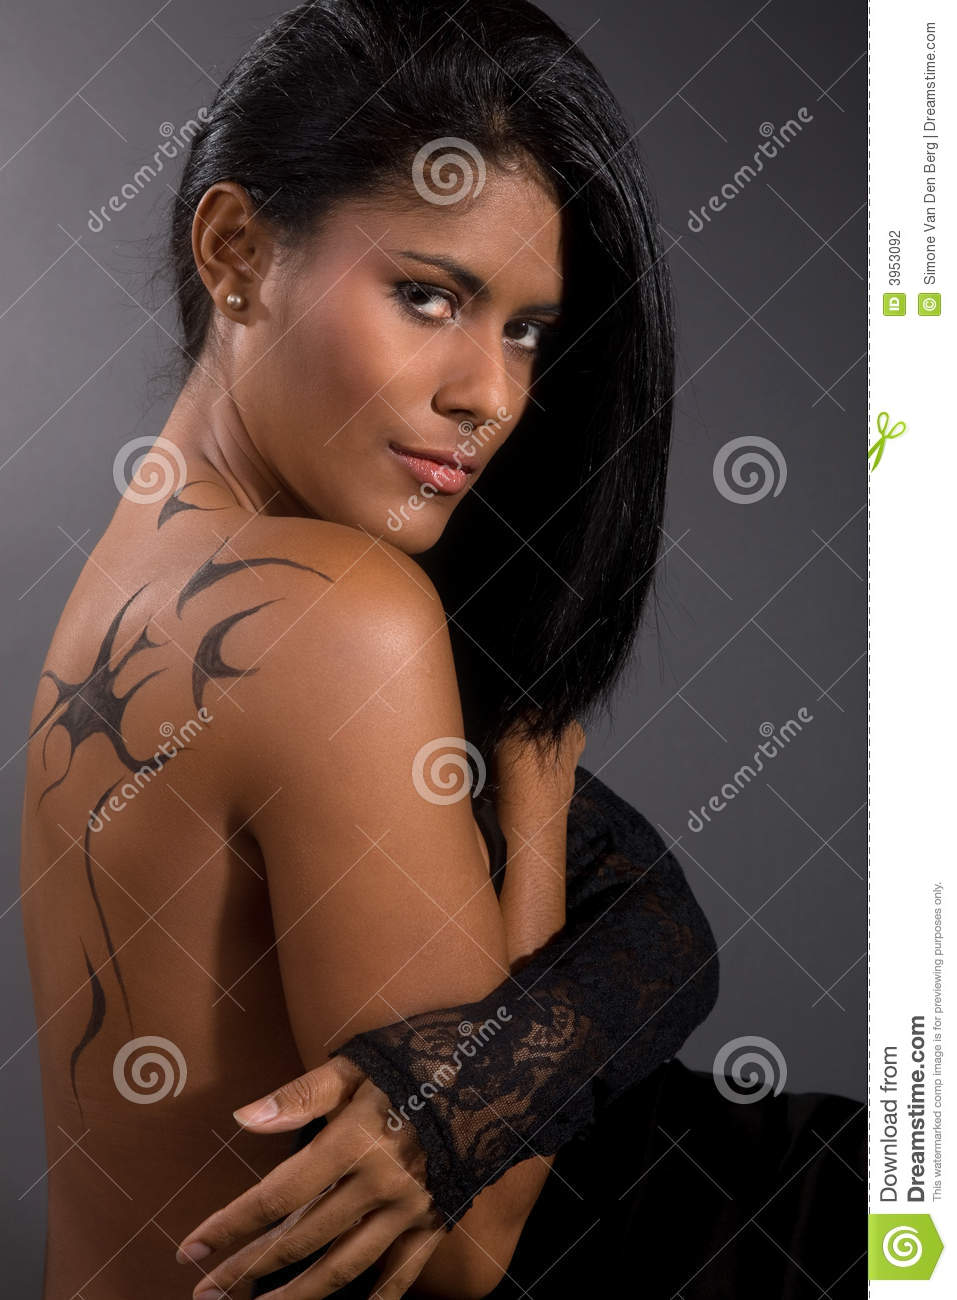 frenchglen latin dating site Latin match is the best online dating site for connecting with sexy latin singles across the globe if you are a latin single searching for love, marriage, casual dating, hookups, or friends, look no further than latin match.